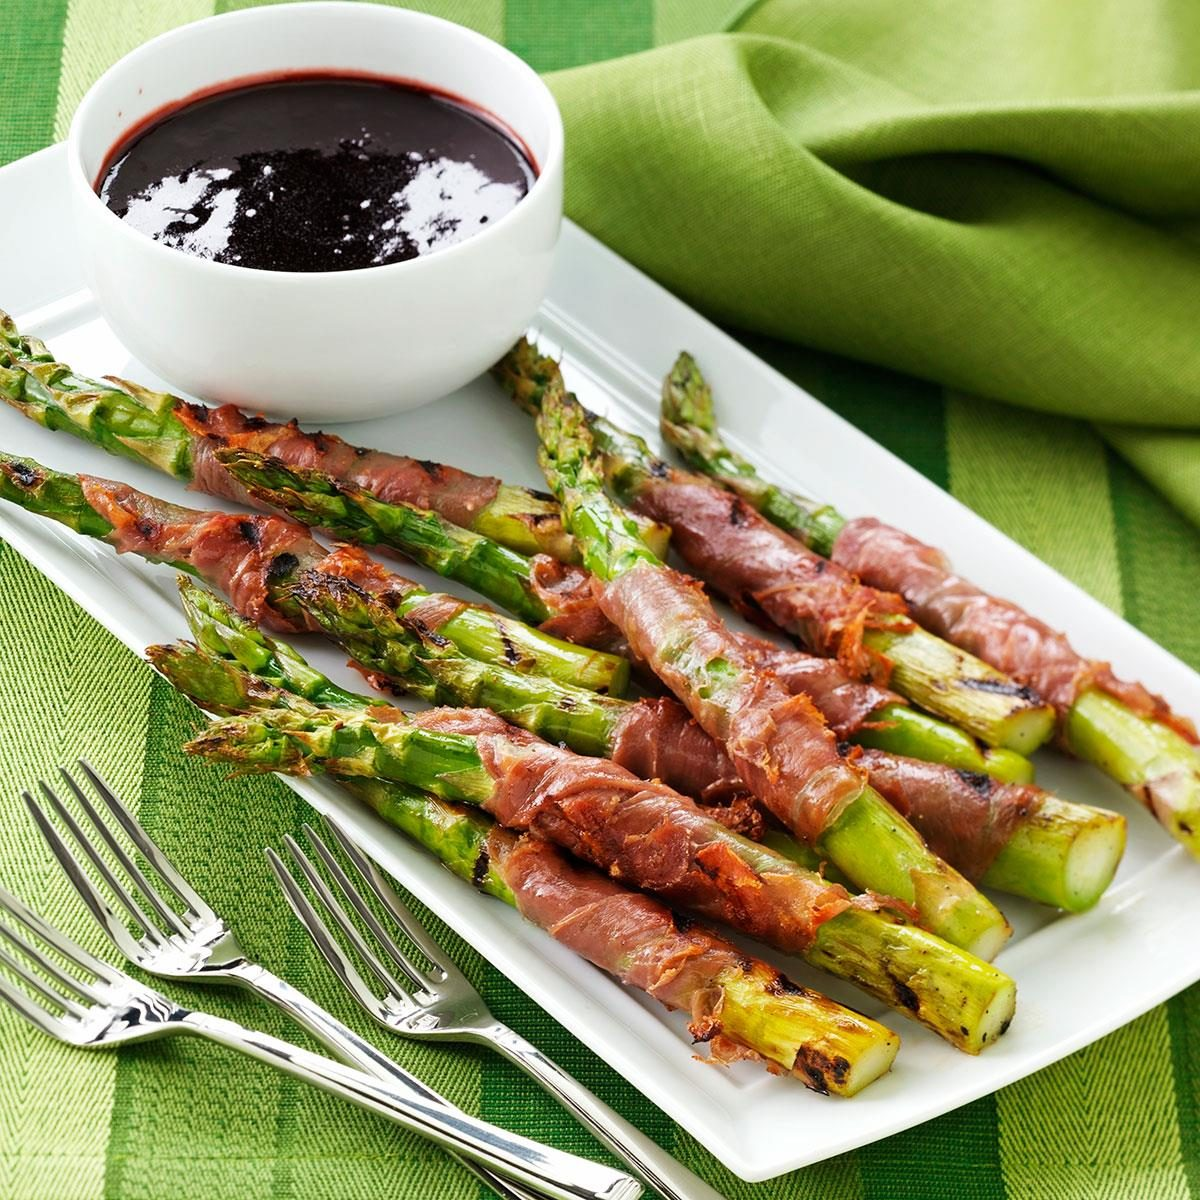 Prosciutto-Wrapped Asparagus With Raspberry Sauce Recipe